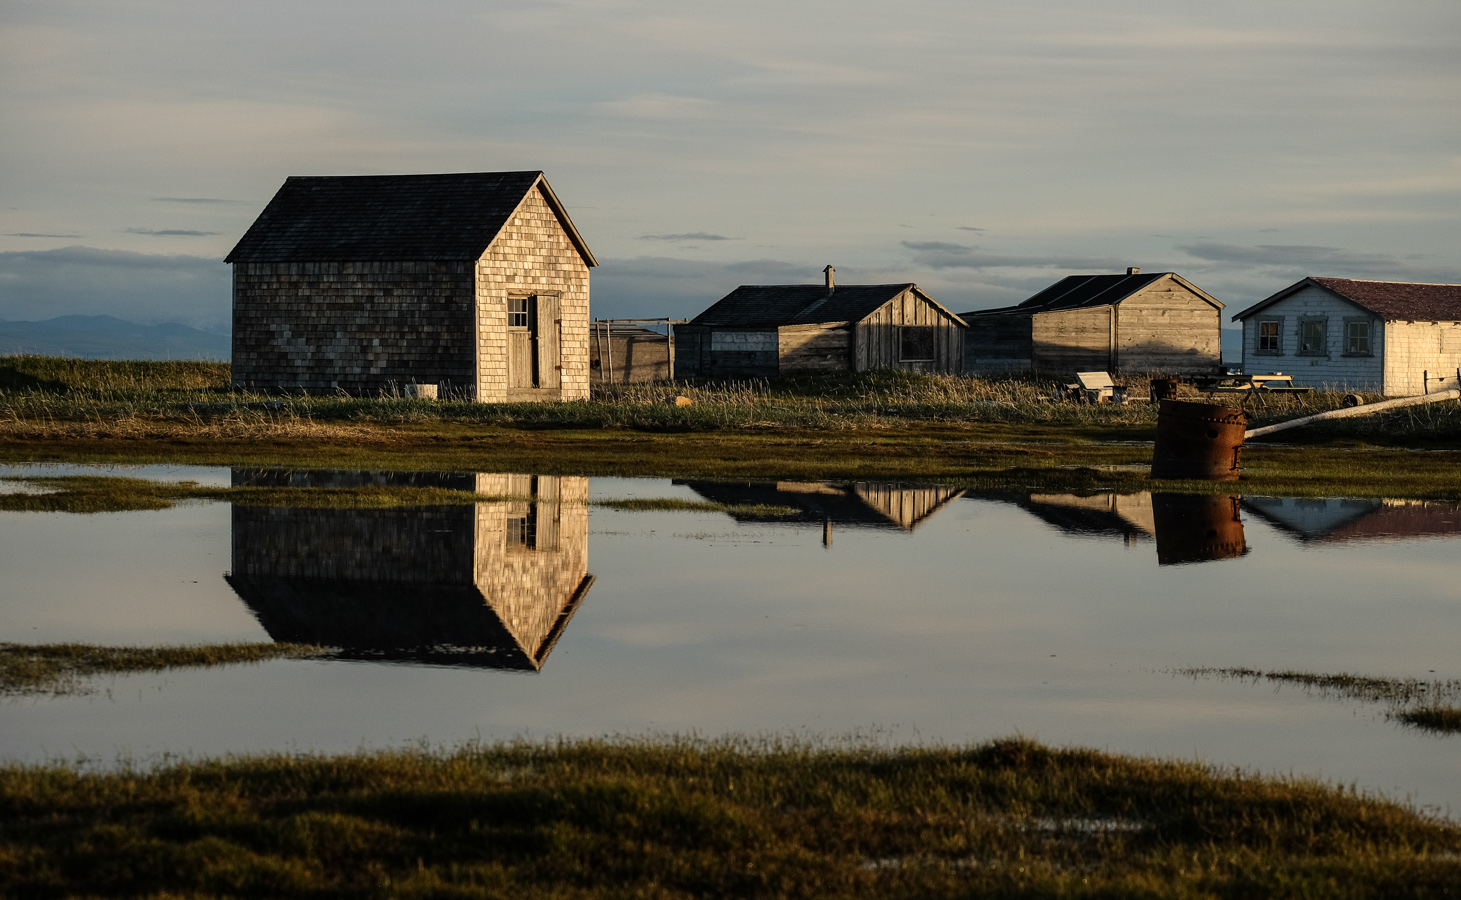 The Pauline Cove settlement on Qikiqtaruk often gets flooded when sea level rises during a storm.